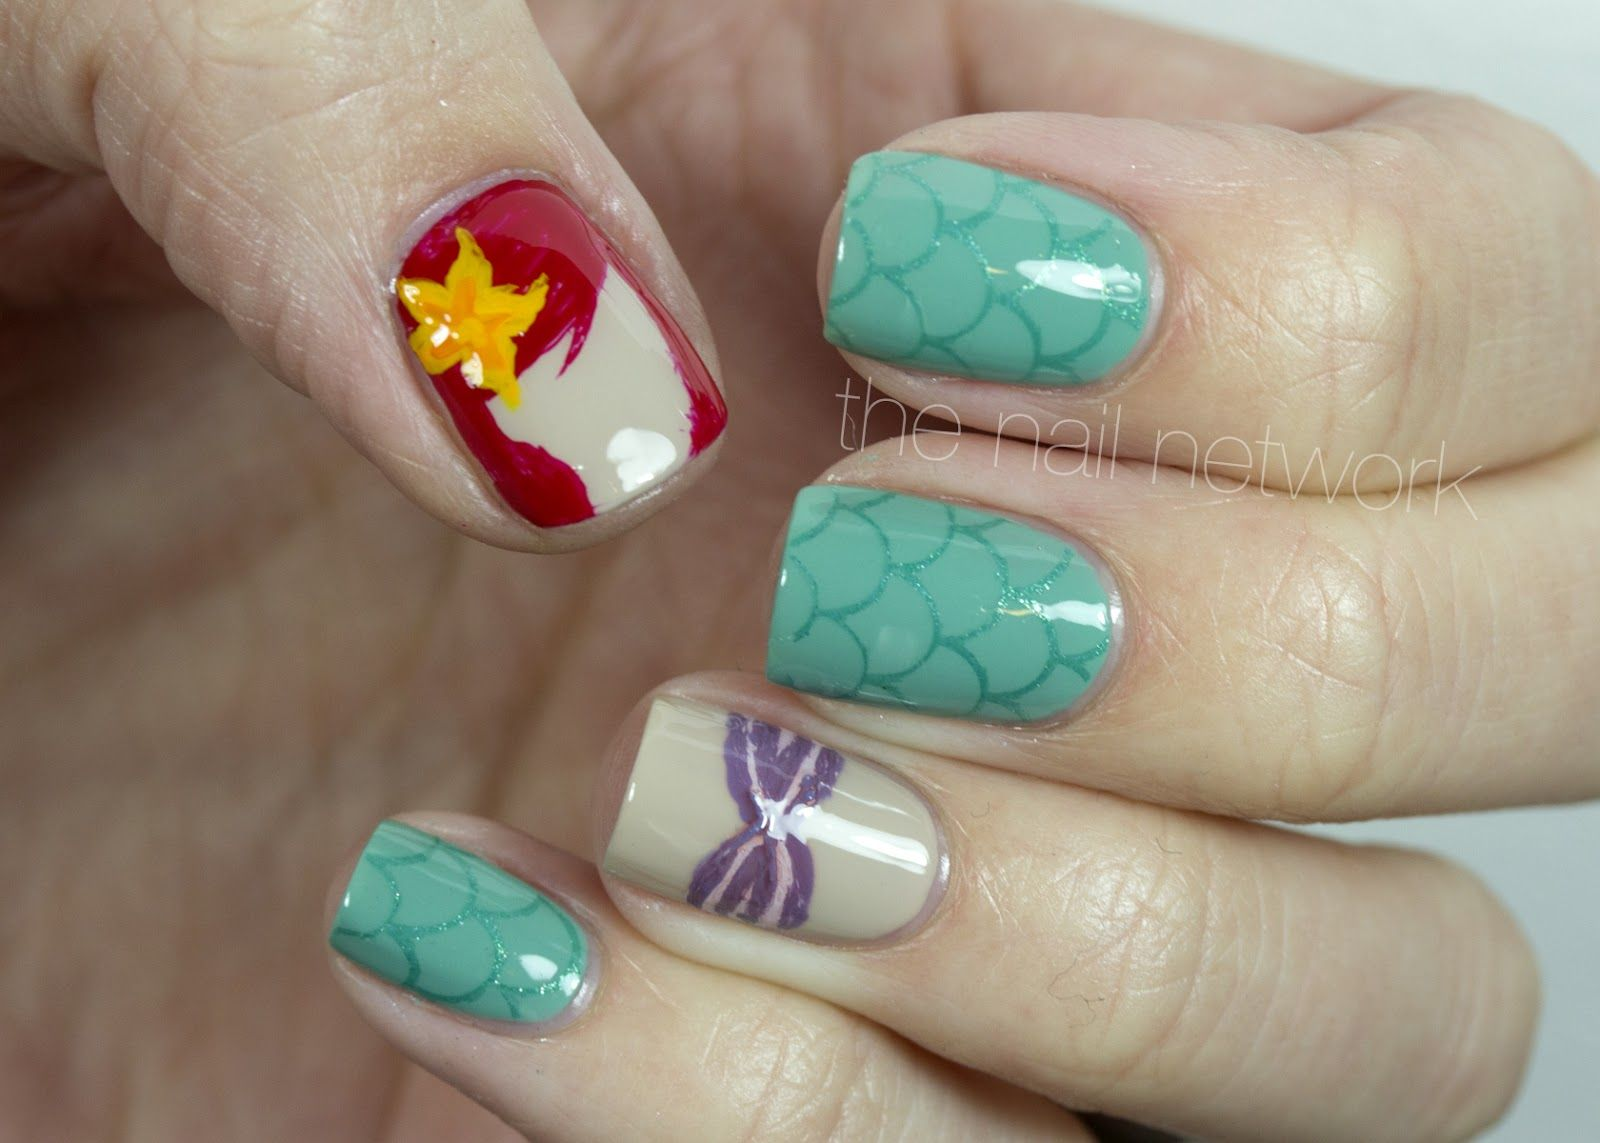 Disney Princess Nail Art - Cute fingernail ideas | Pinterest - Nagel ...